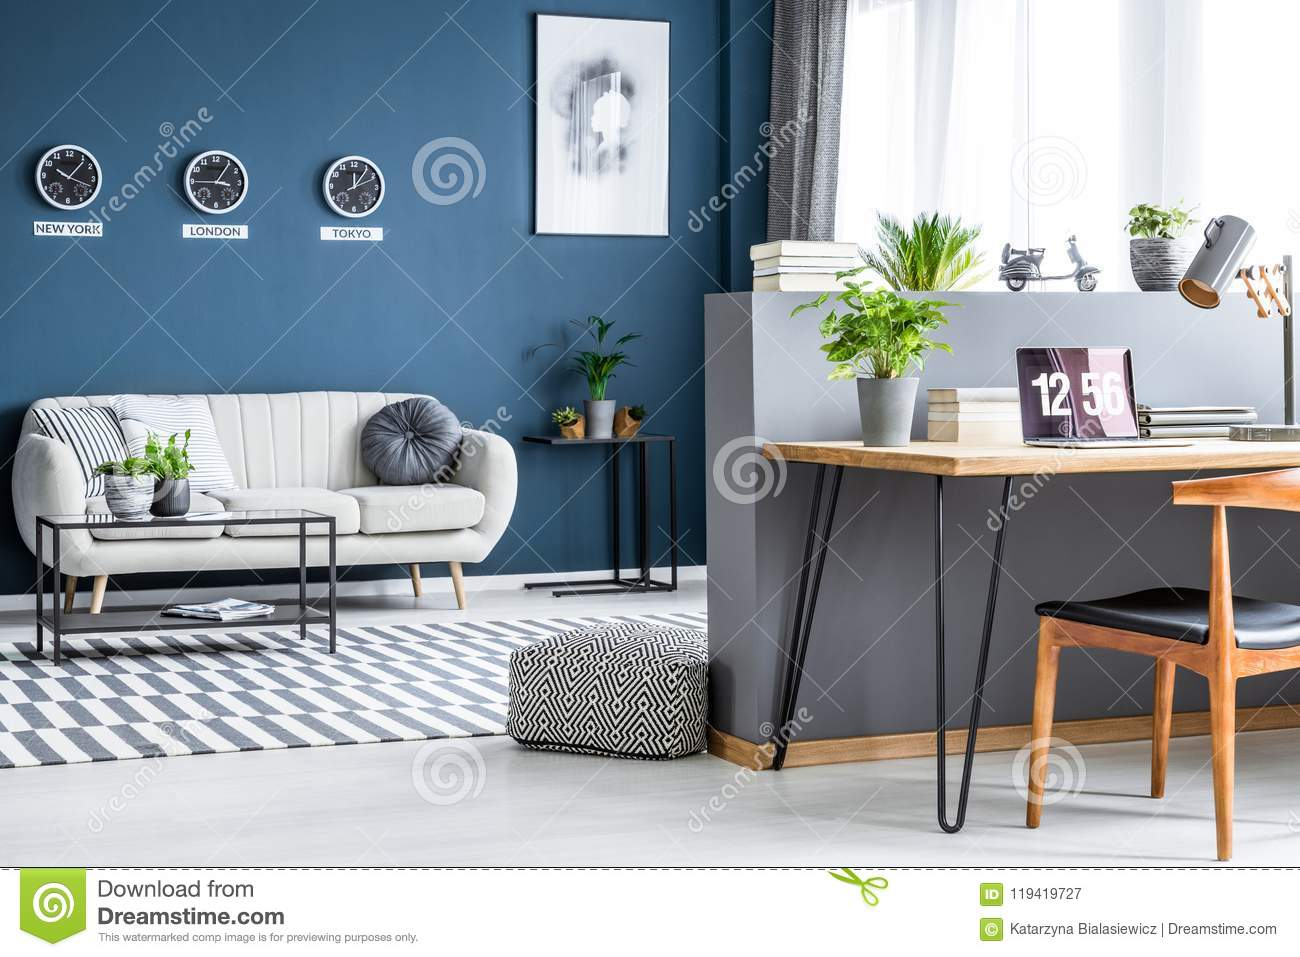 Sofa In Home Office Dark Blue Living Room Interior With Three Clocks Simple